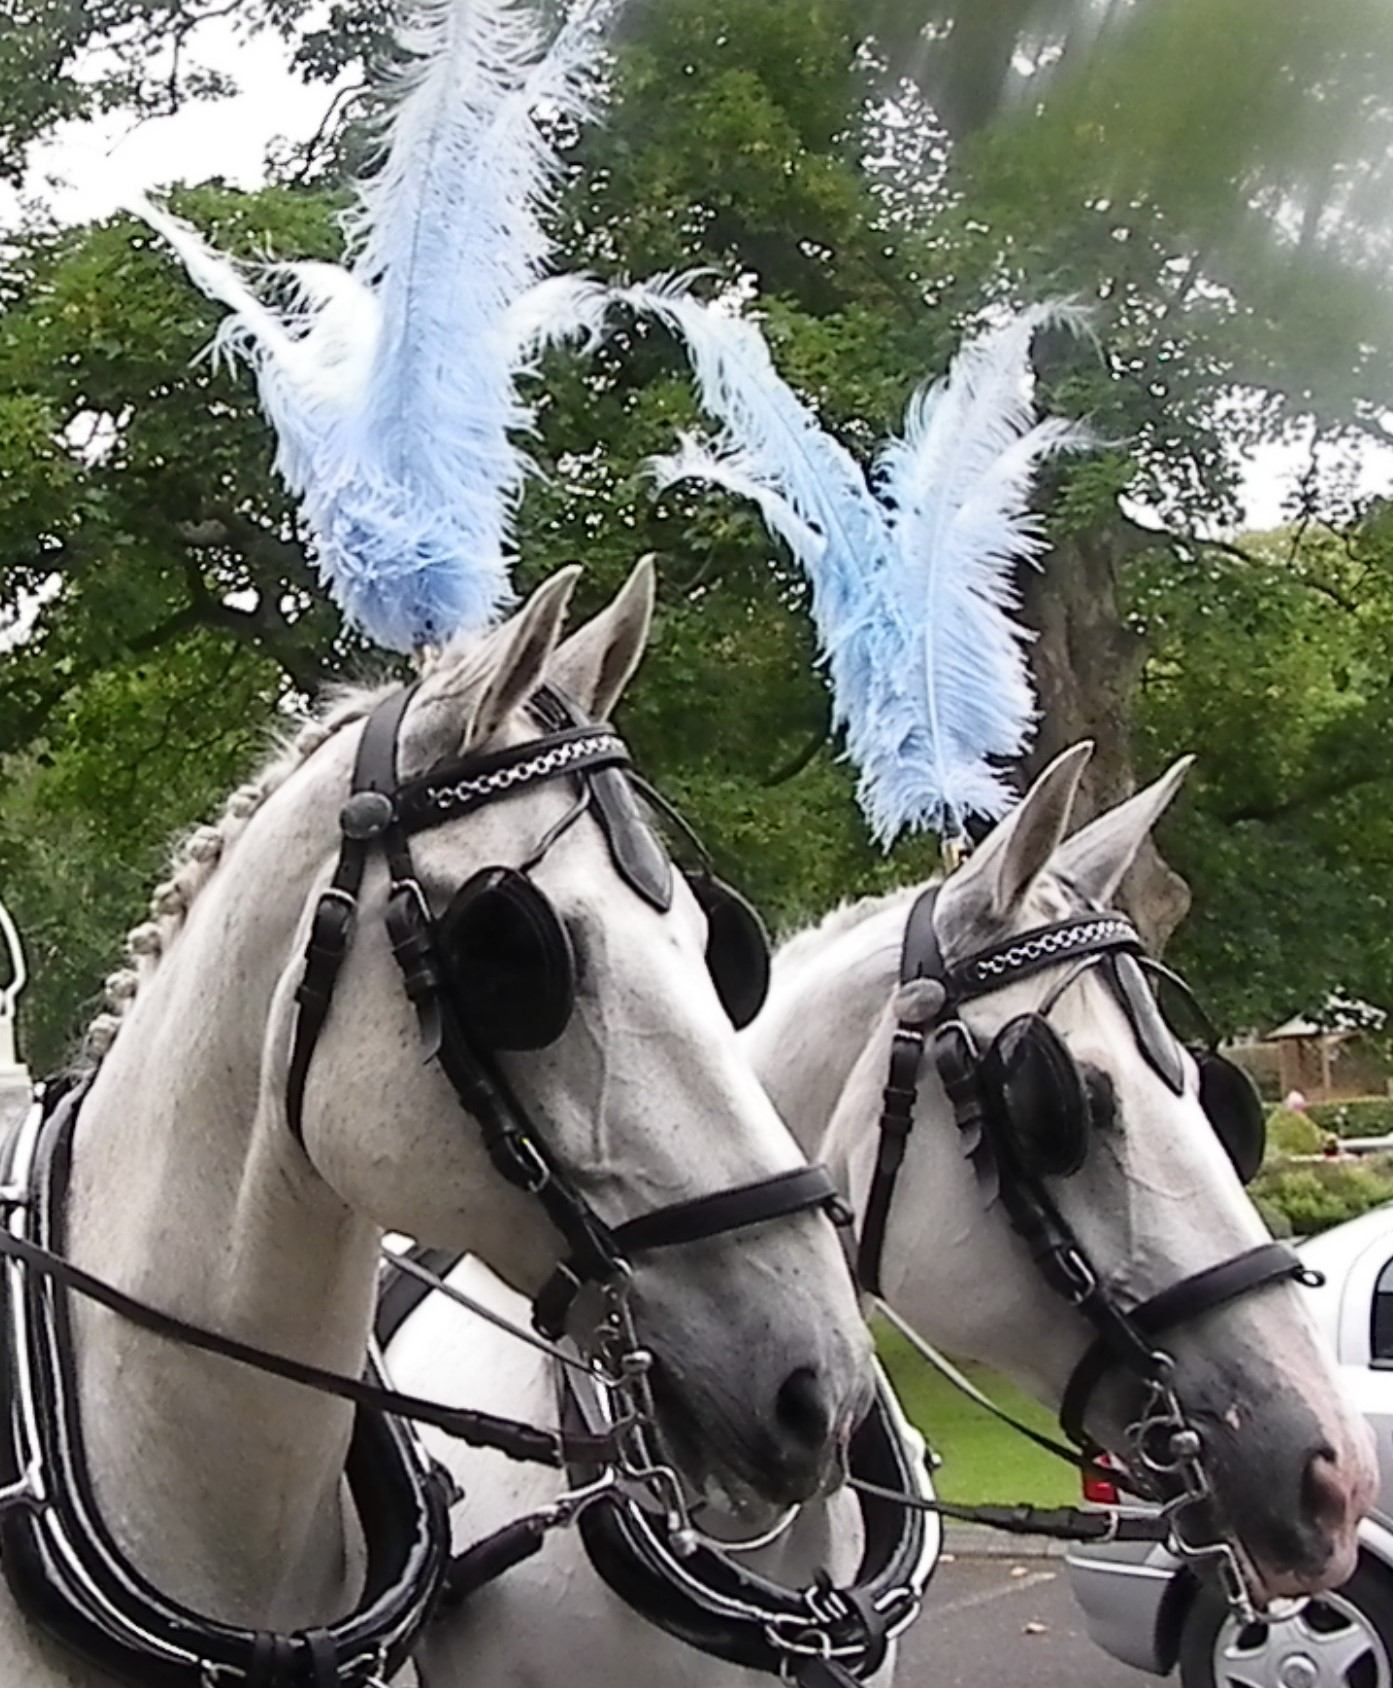 close up view of two white horses with baby blue plumes